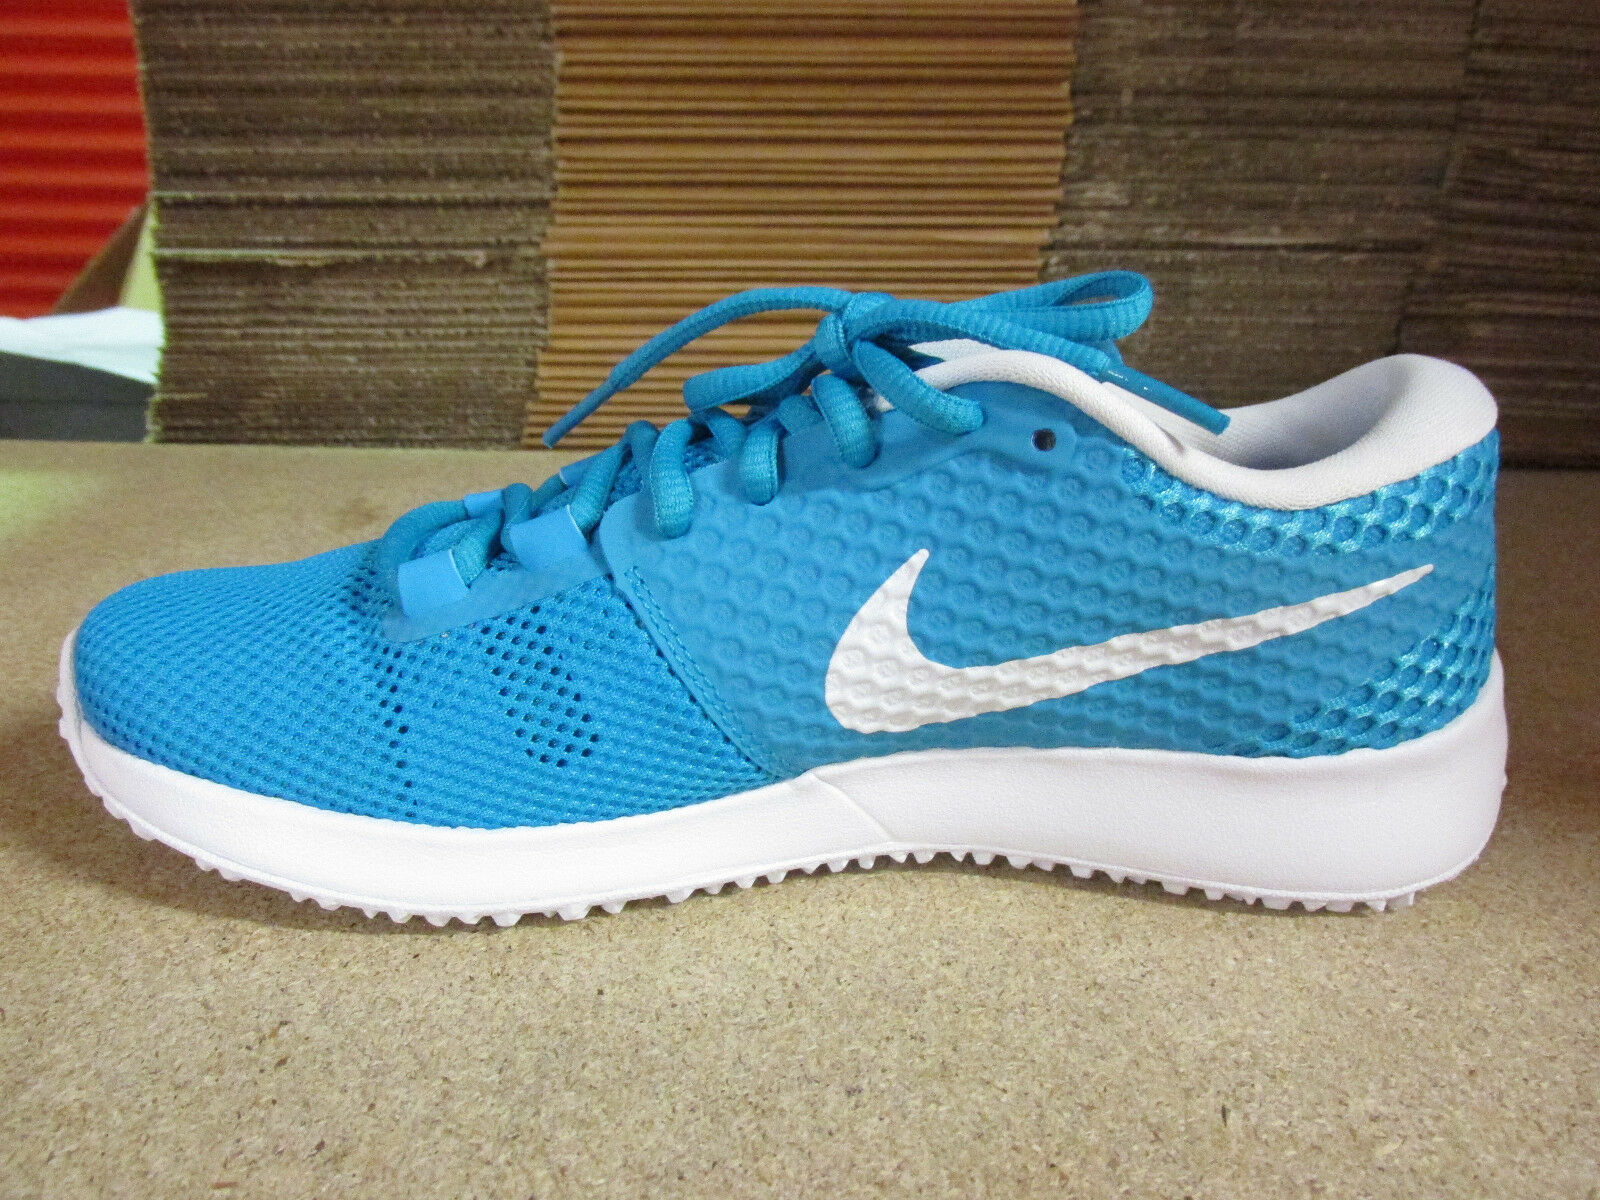 new style 22d9b e4a9a ... nike nike nike zoom speed TR2 mens running trainers 684621 410 sneakers  shoes 74e259 ...